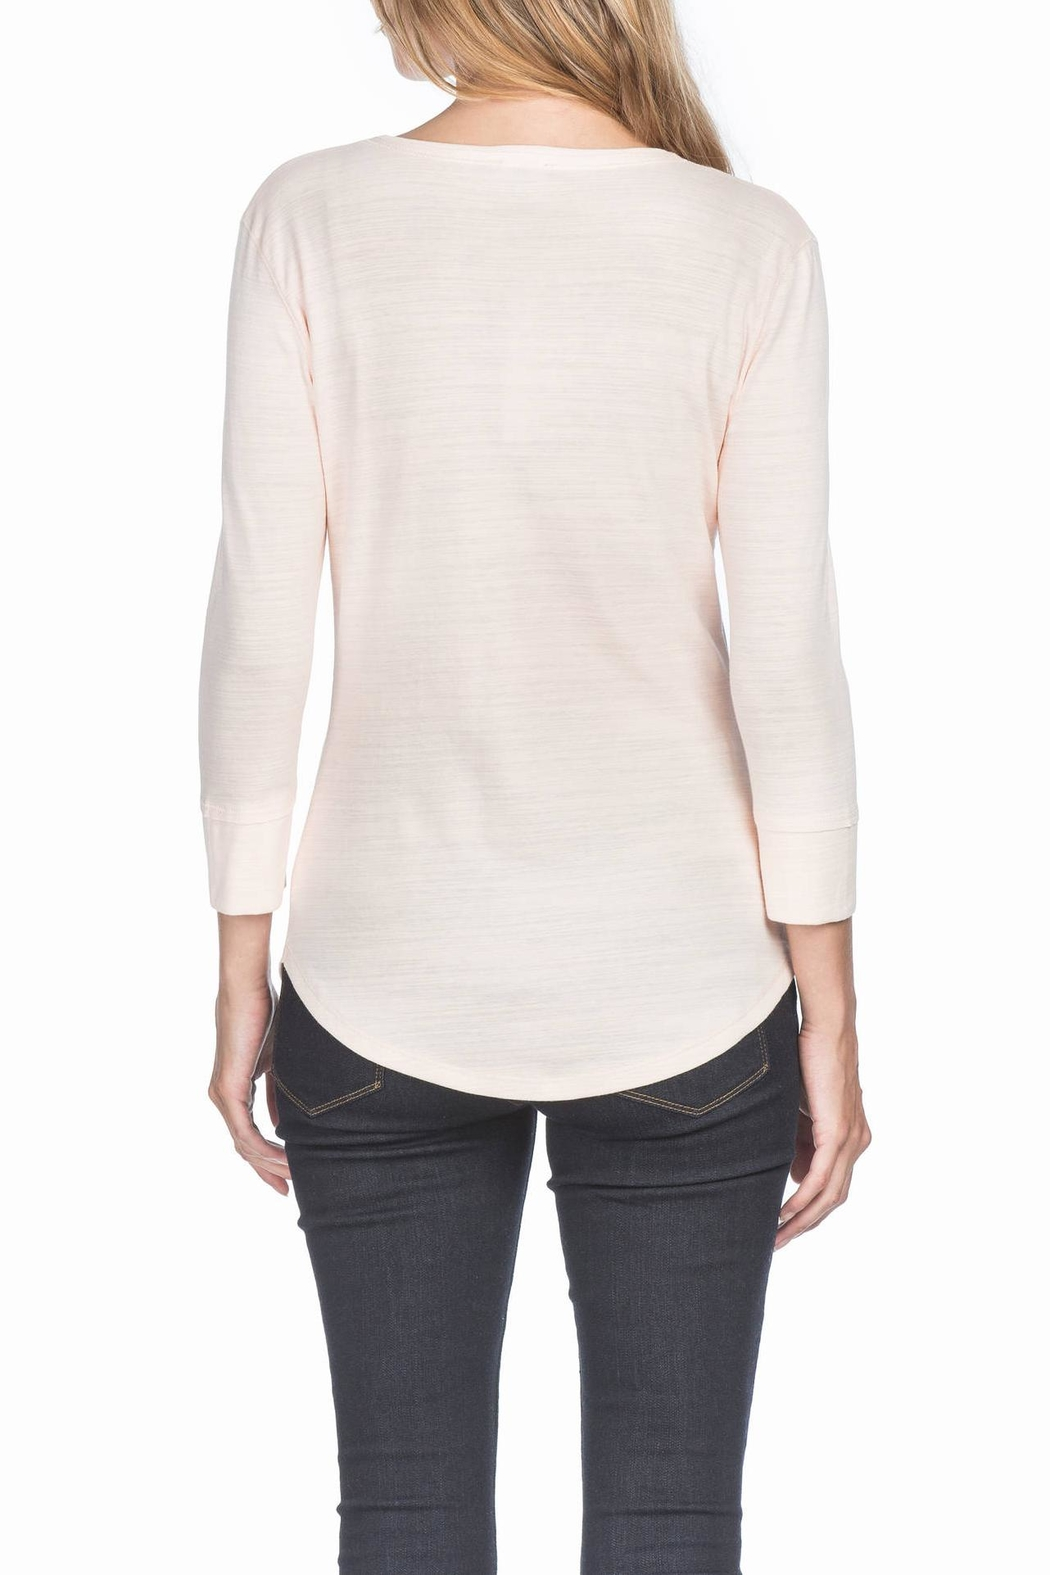 Lilla P 3/4 Sleeve V-Neck - Front Full Image